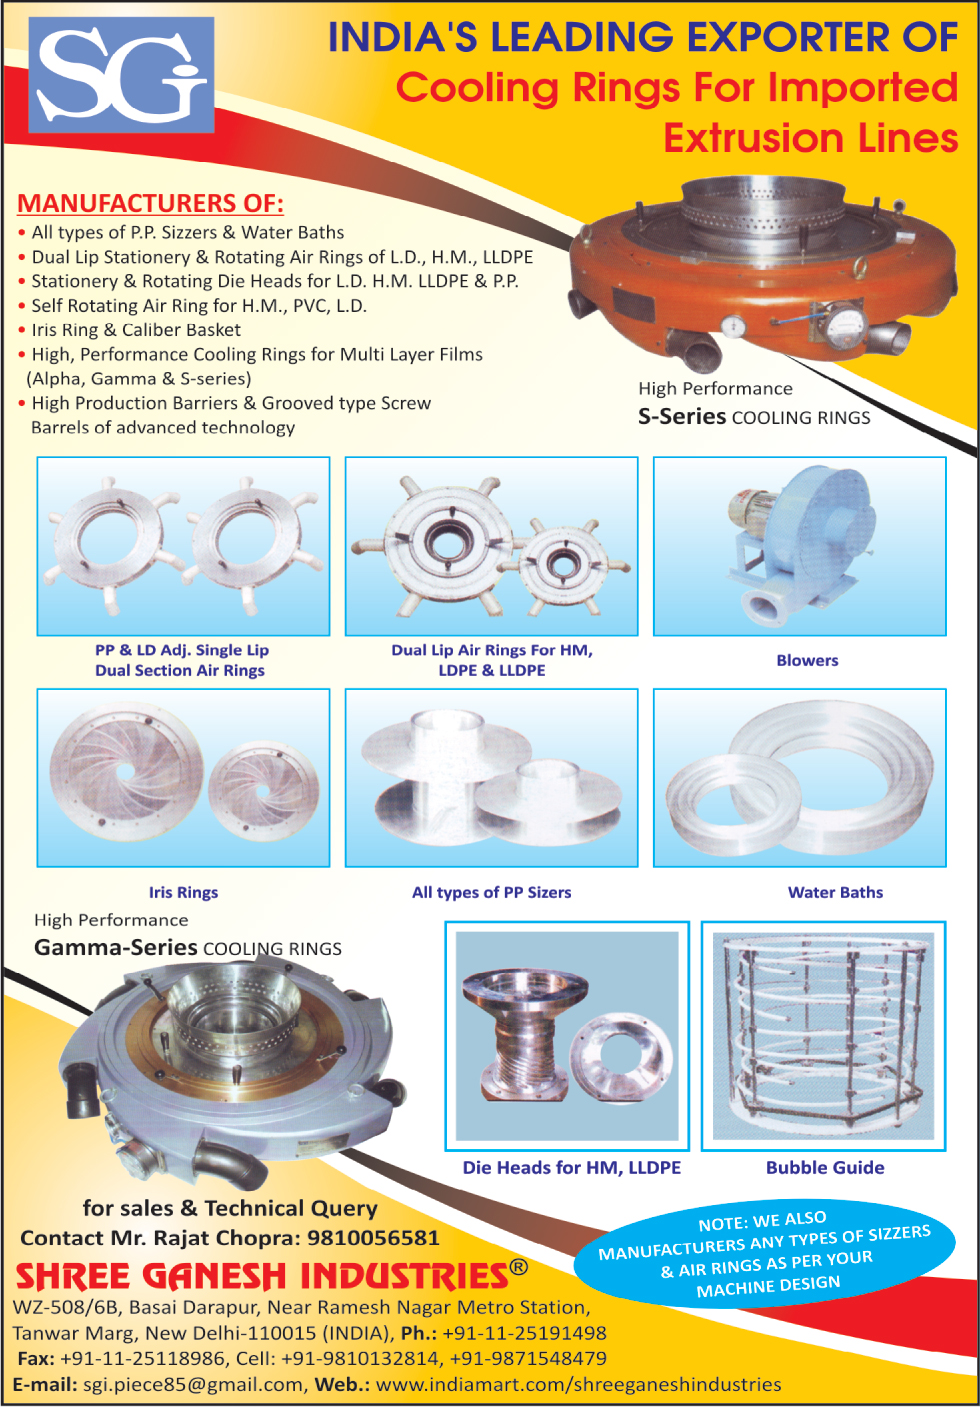 Cooling rings For Imported Extrusion Lines, PP Sizers, Water Baths, Dual Lip Stationery Air Rings Of LD, Dual Lip Stationery Air Rings Of HM, Dual Lip Stationery Air Rings Of LLDP, Rotating Air Rings OF LD, Rotating Air Rings of HM, Rotating Air Rings Of LLDPE, Self Rotating Air Ring For HM, Self Rotating Air Ring For LD, Self Rotating Rings For PVC, Stationary Die Heads For LD, Stationary Die Head For HM, Stationary Die Head For LLDPE, Stationary Die Head For PP, Iris Rings, Caliber Baskets, Cooling Ring For Multi Layer Films, High Production Barriers, Grooved Type Screws, S Series Cooling Rings, PP Sizers, Bubble Guides, Die Head For HM, Die Head For LLDPE, Dual Lip Air Ring For HM, Dual Lip Ring For LDPE, Dual Lip Ring For LLDPE, LD Adjustable Single Lip Dual Section Air Rings, PP Adjustable Single Lip Dual Section Air Rings